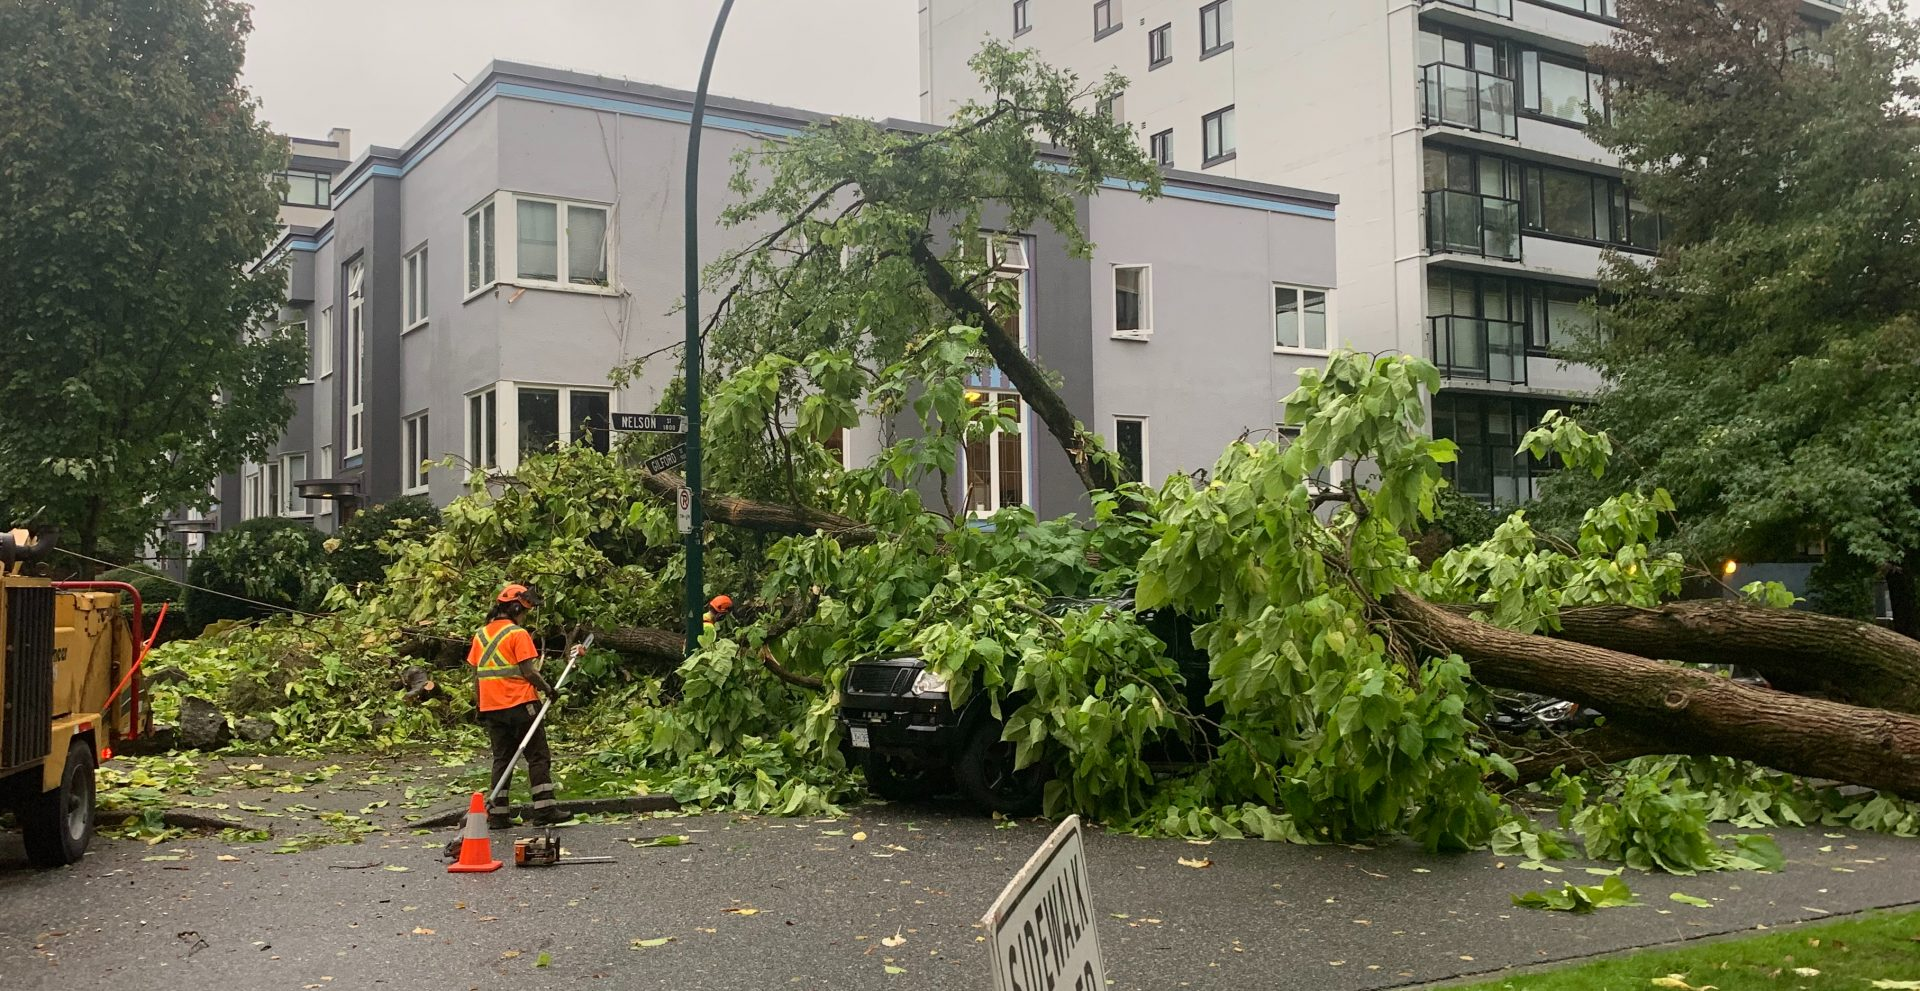 A tree crashed through a window in the West End after heavy storm (PHOTOS)